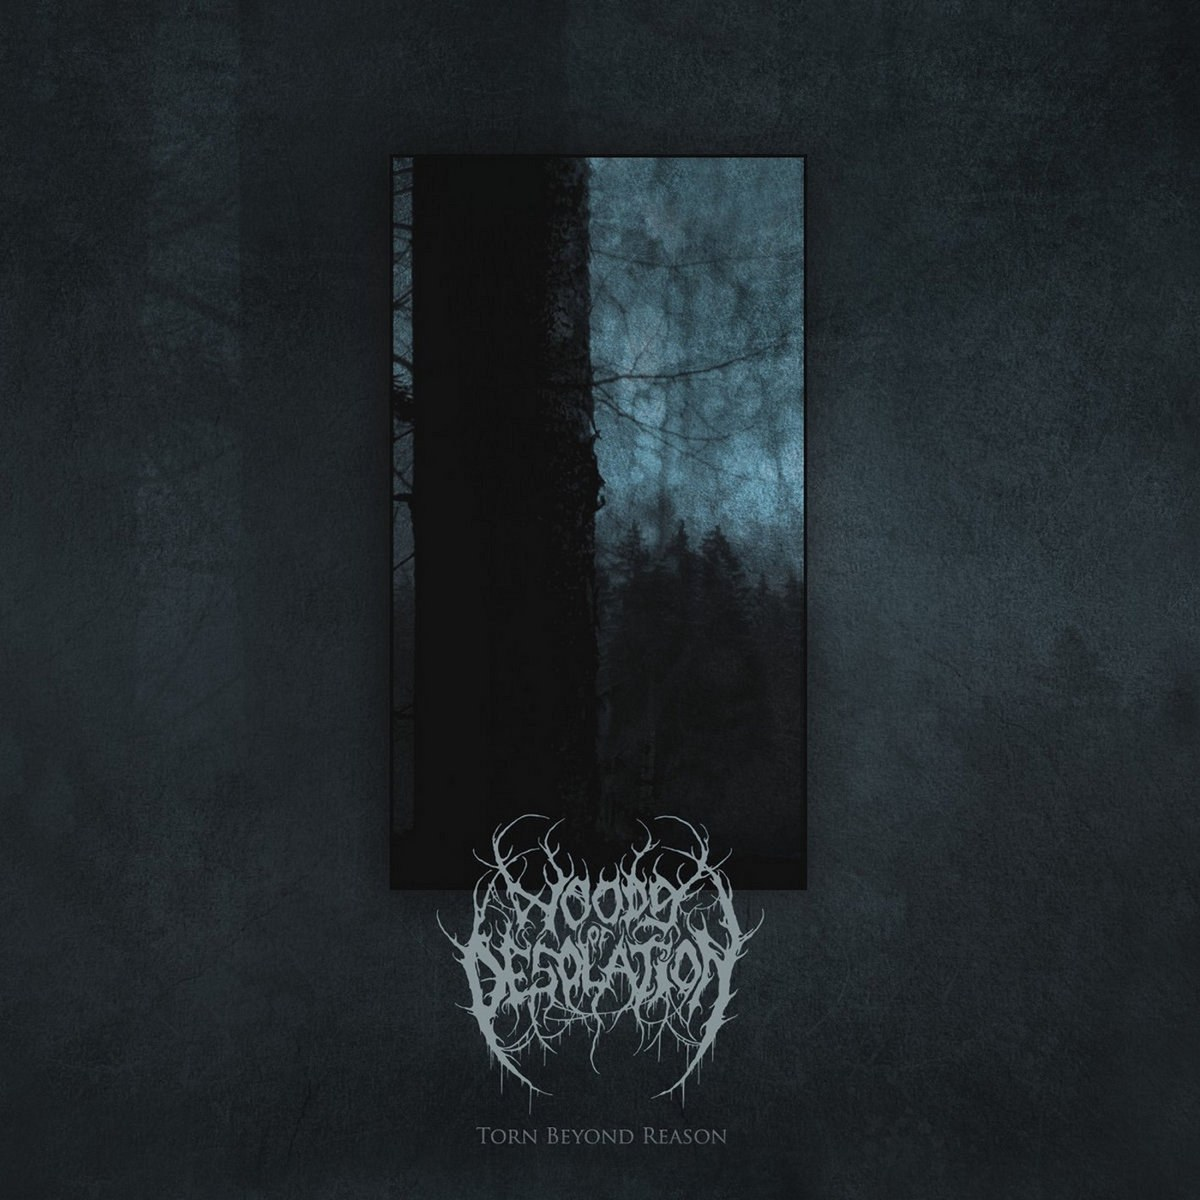 Review for Woods of Desolation - Torn Beyond Reason